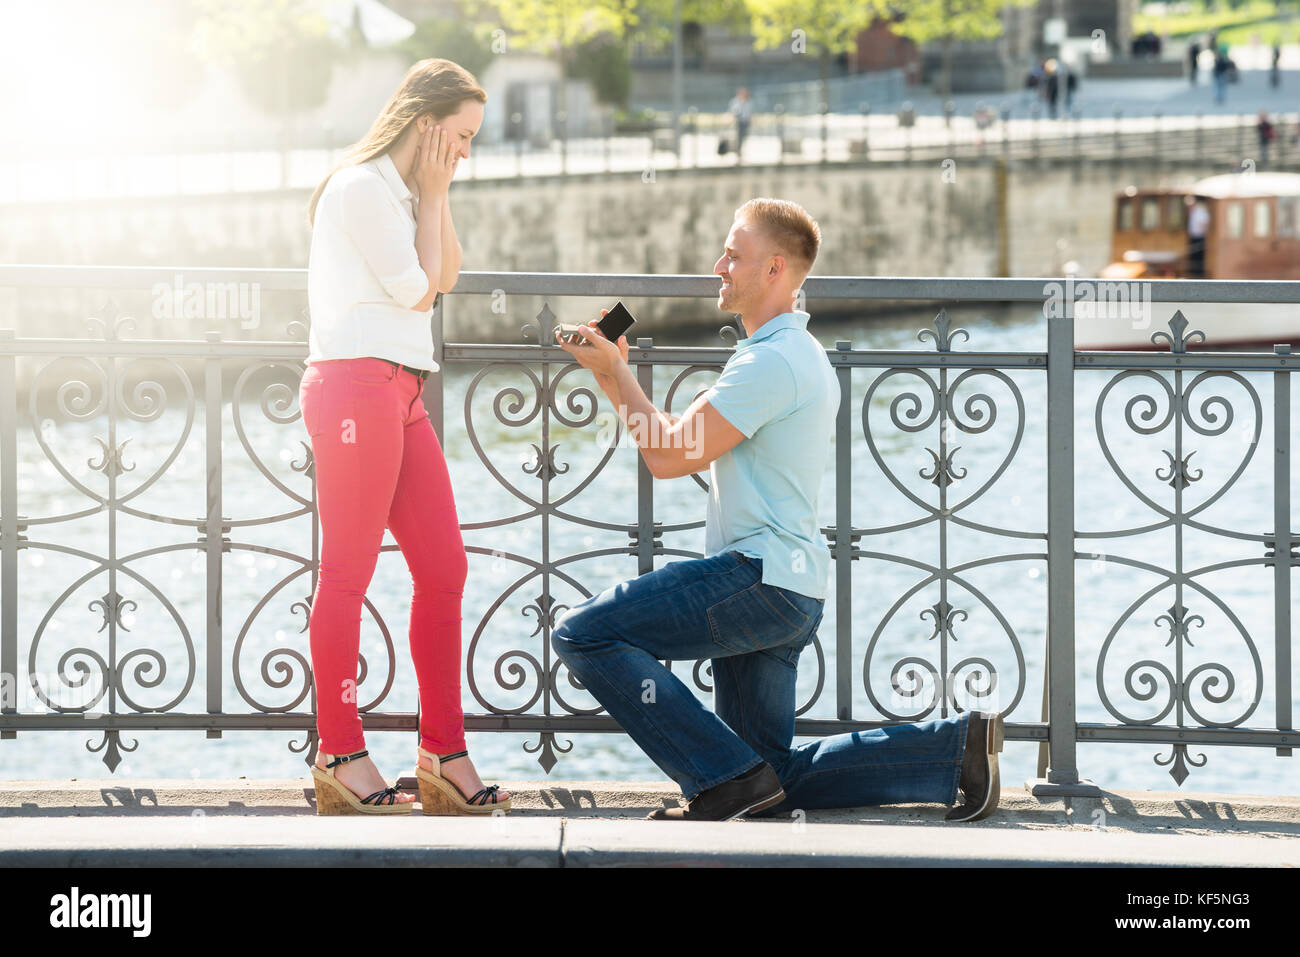 Young Man With Ring Making Proposal To Woman - Stock Image